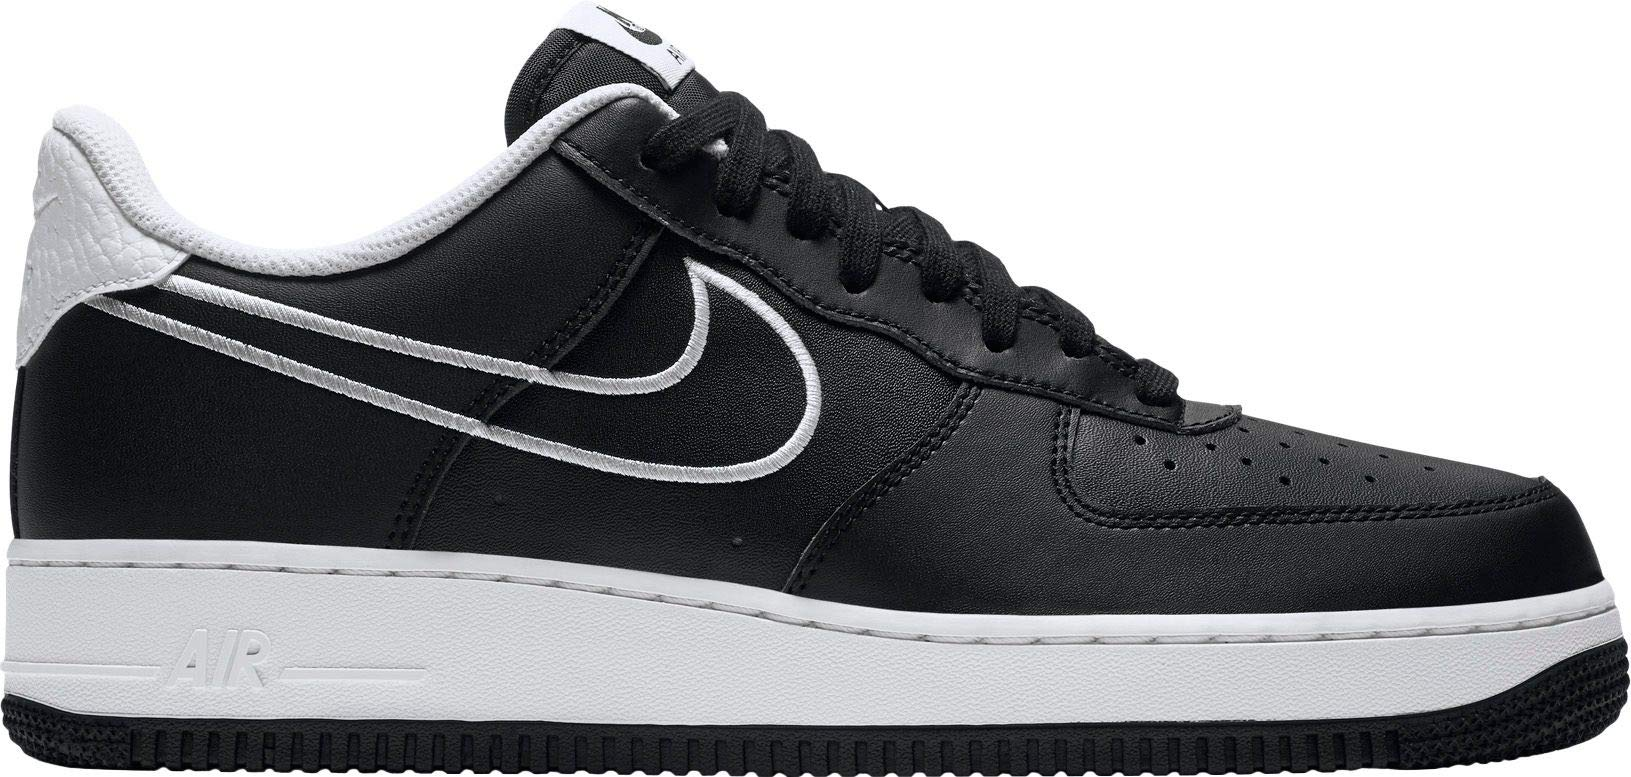 NIKE Men's Air Force 1 '07 Leather Shoe Black/White, 11.5